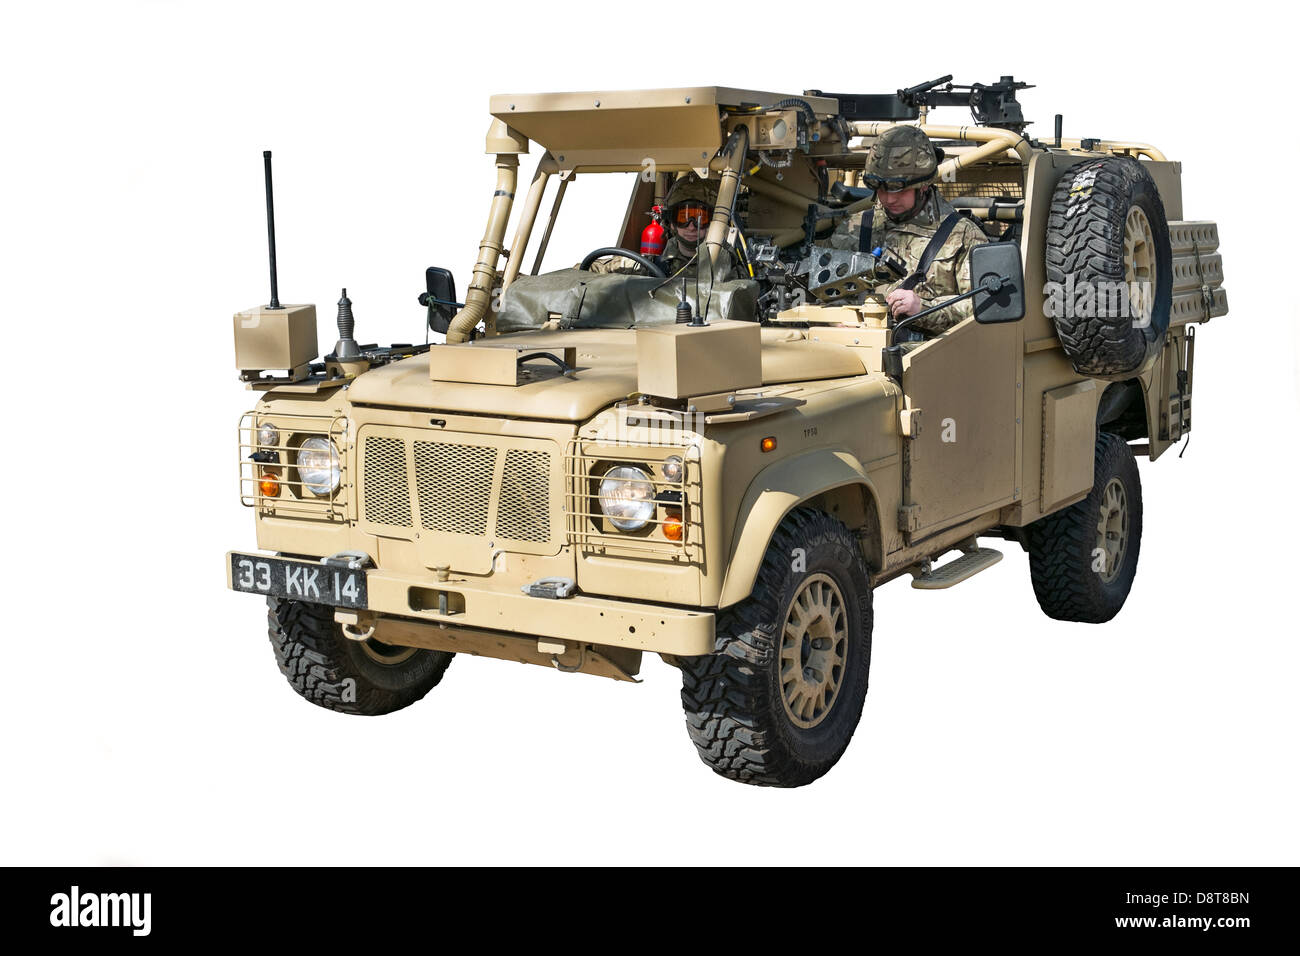 a cut out of a uk military mwp land rover manned by two. Black Bedroom Furniture Sets. Home Design Ideas